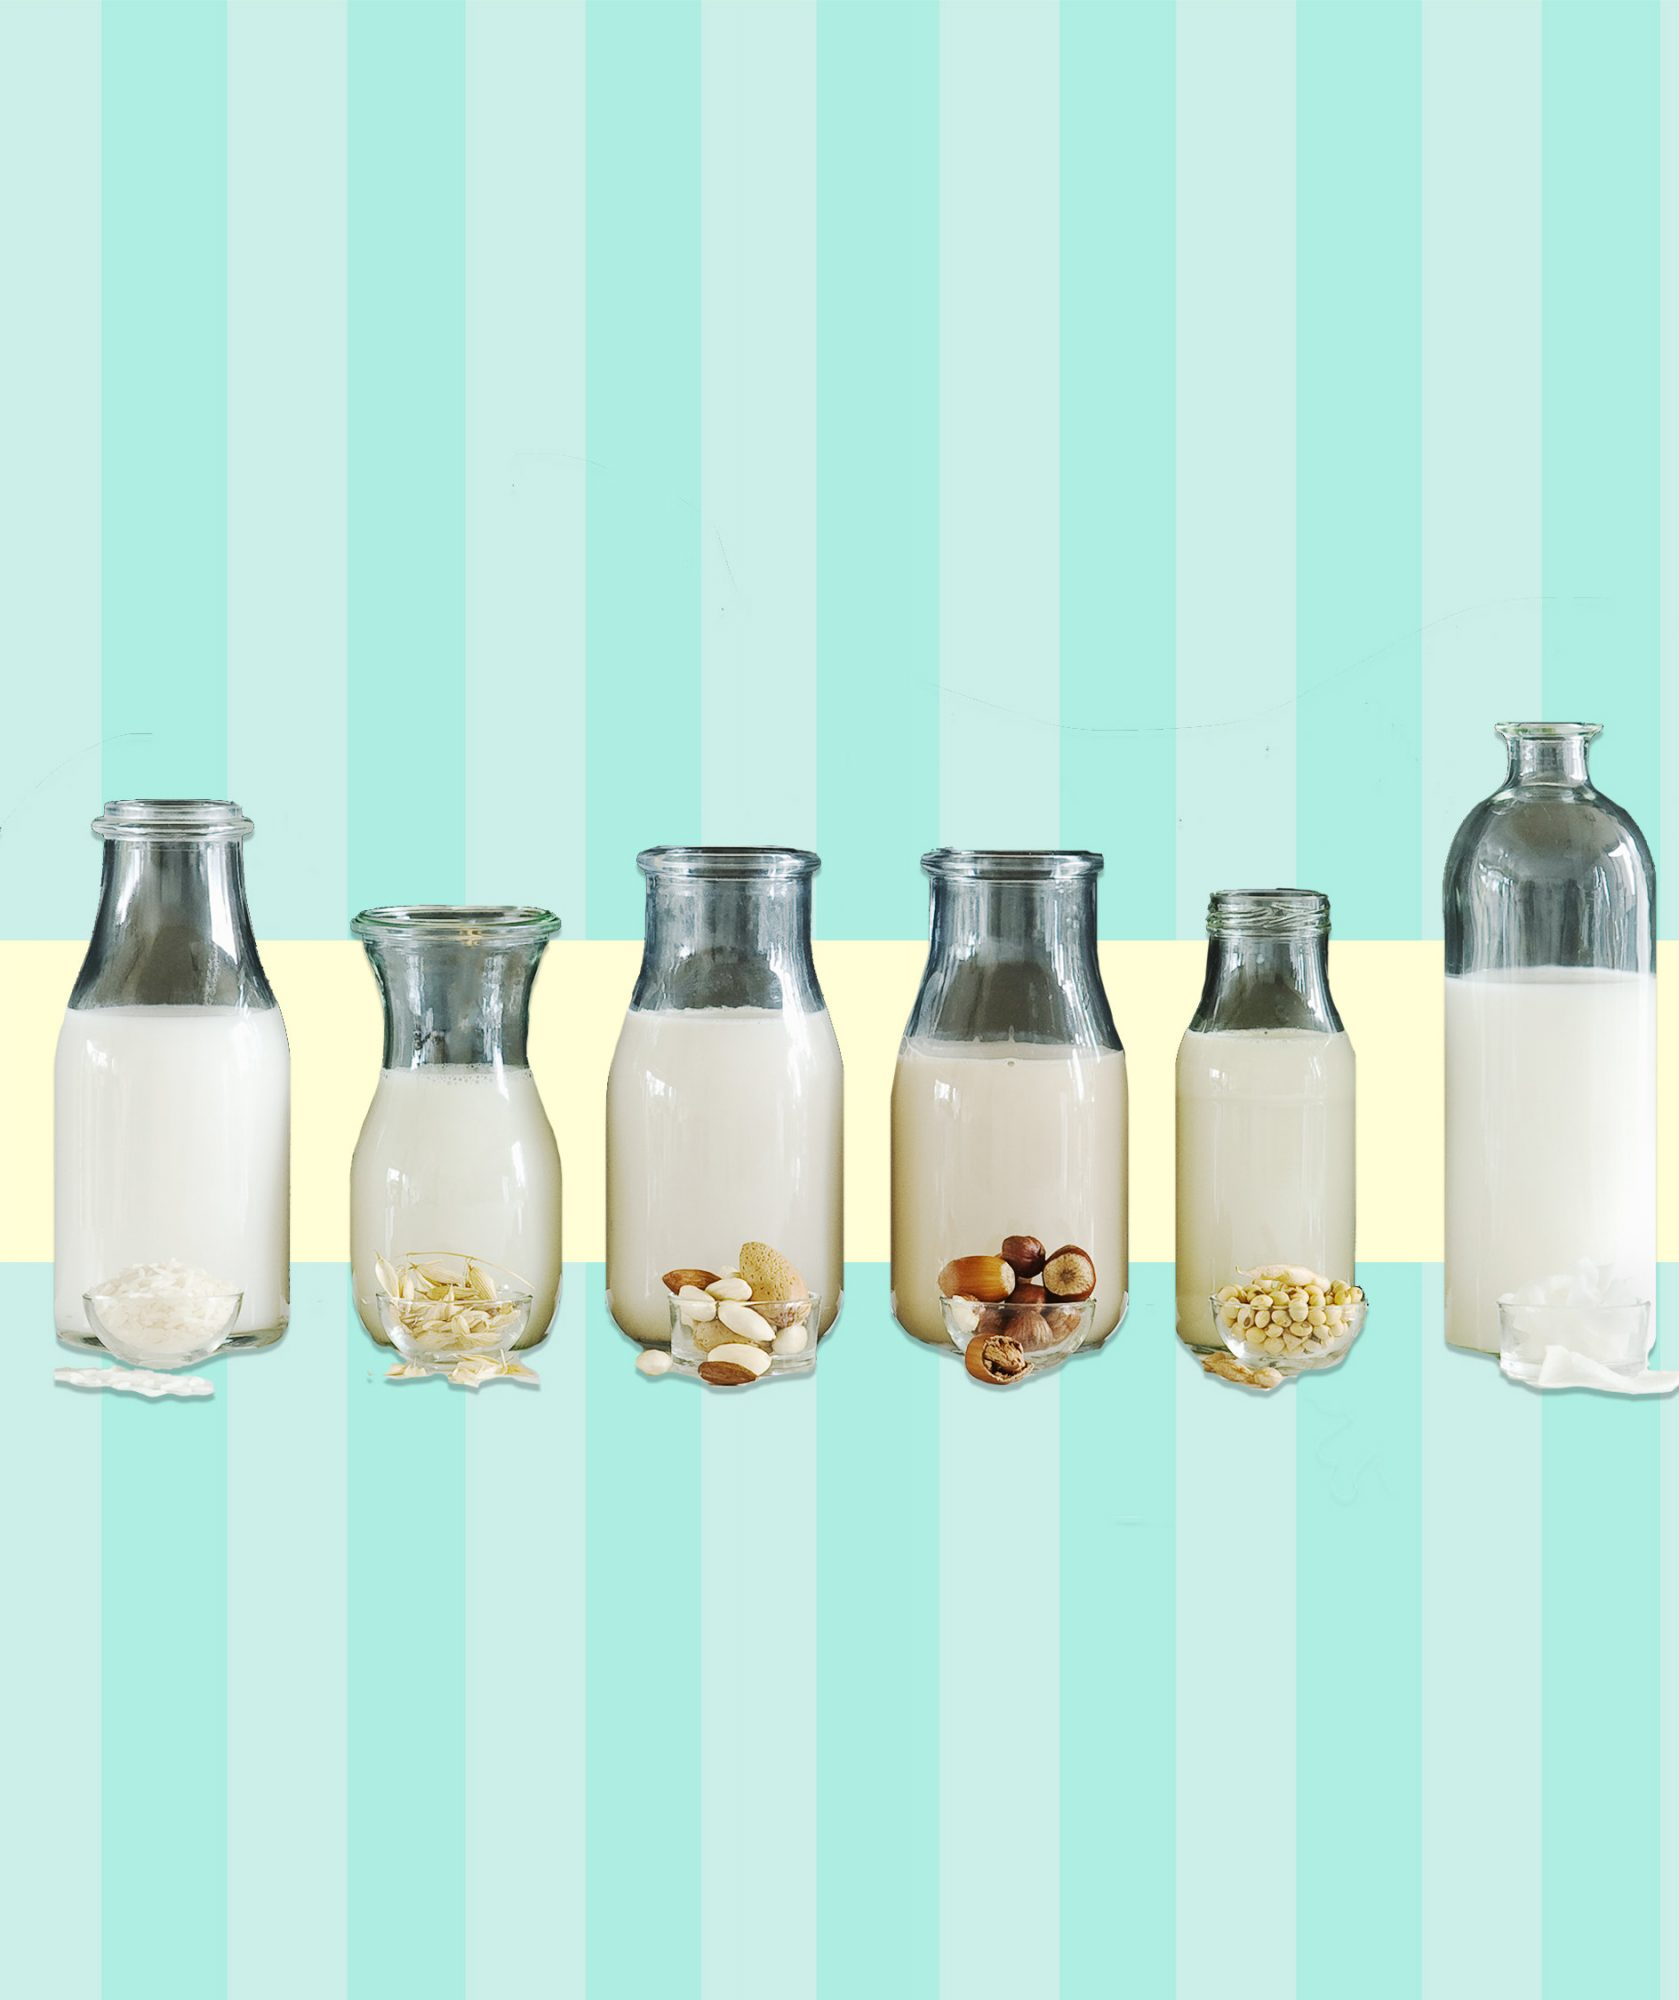 Confused About Non-Dairy Milks? Here's a Breakdown Of All Your Options